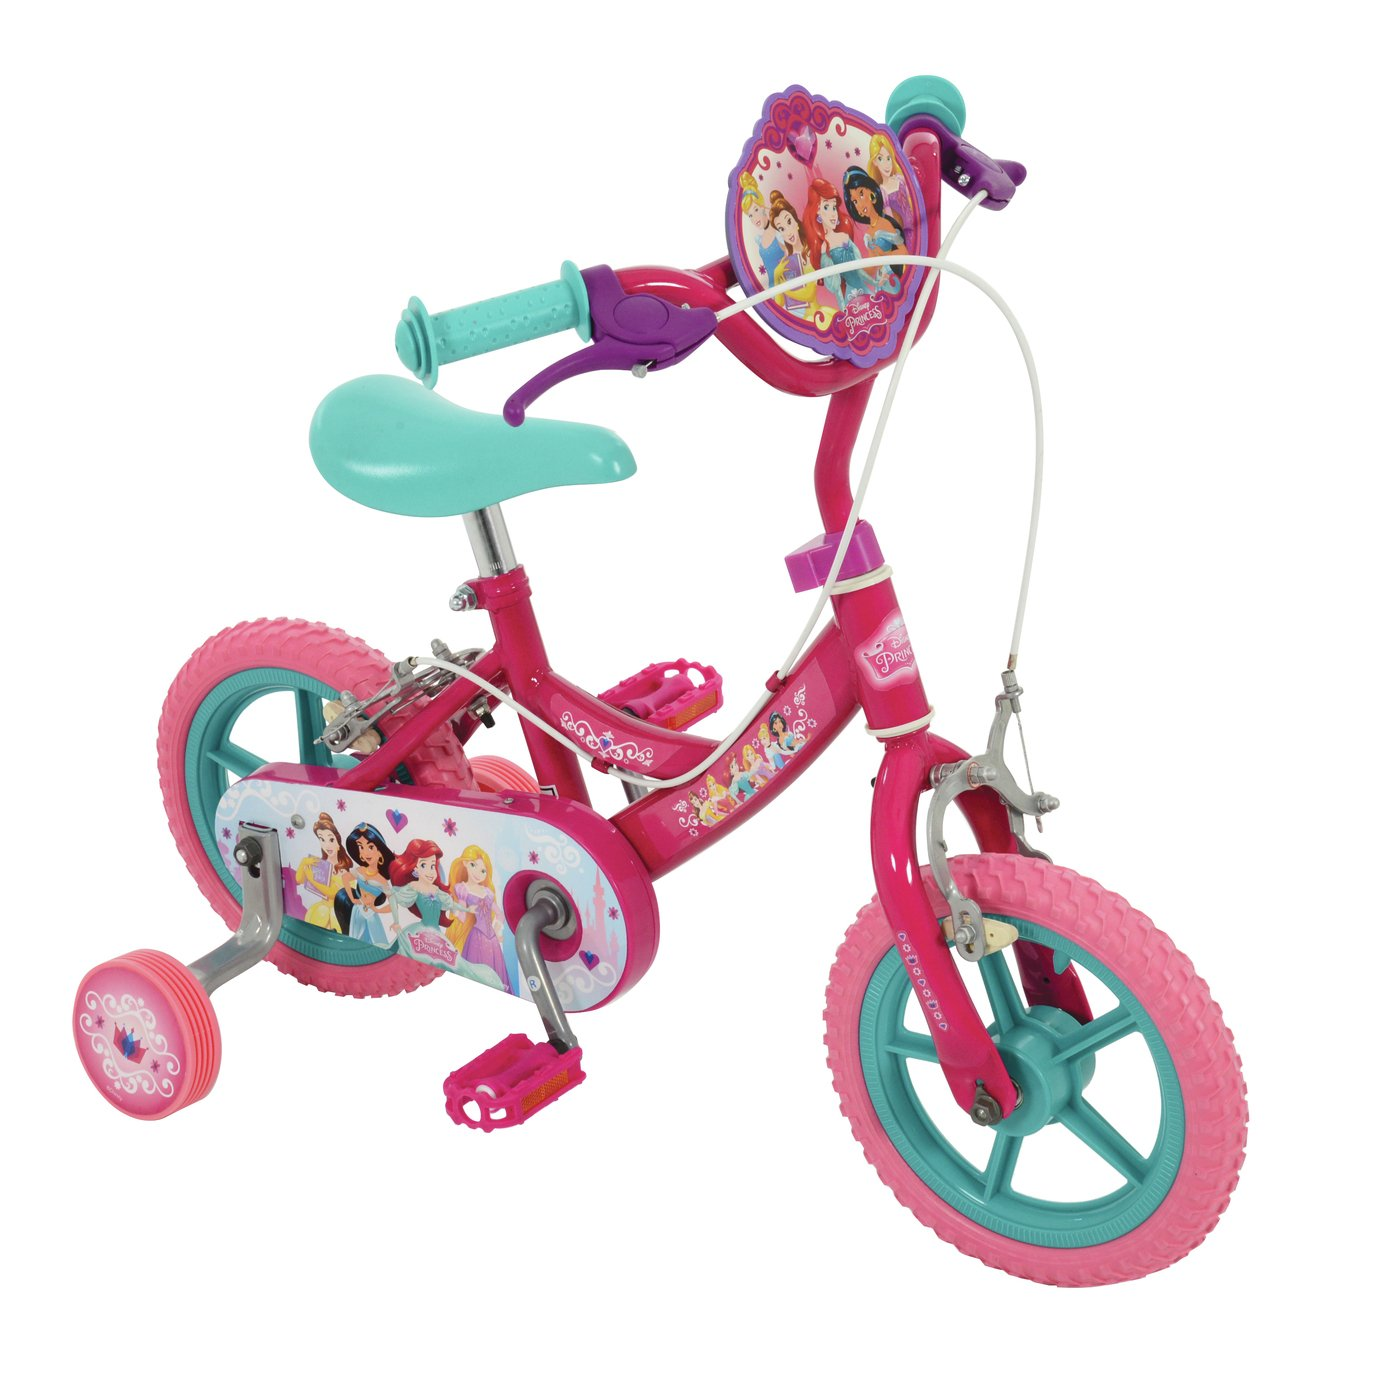 Disney Princess 12 Inch Kids Bike - Purple from Disney Princess